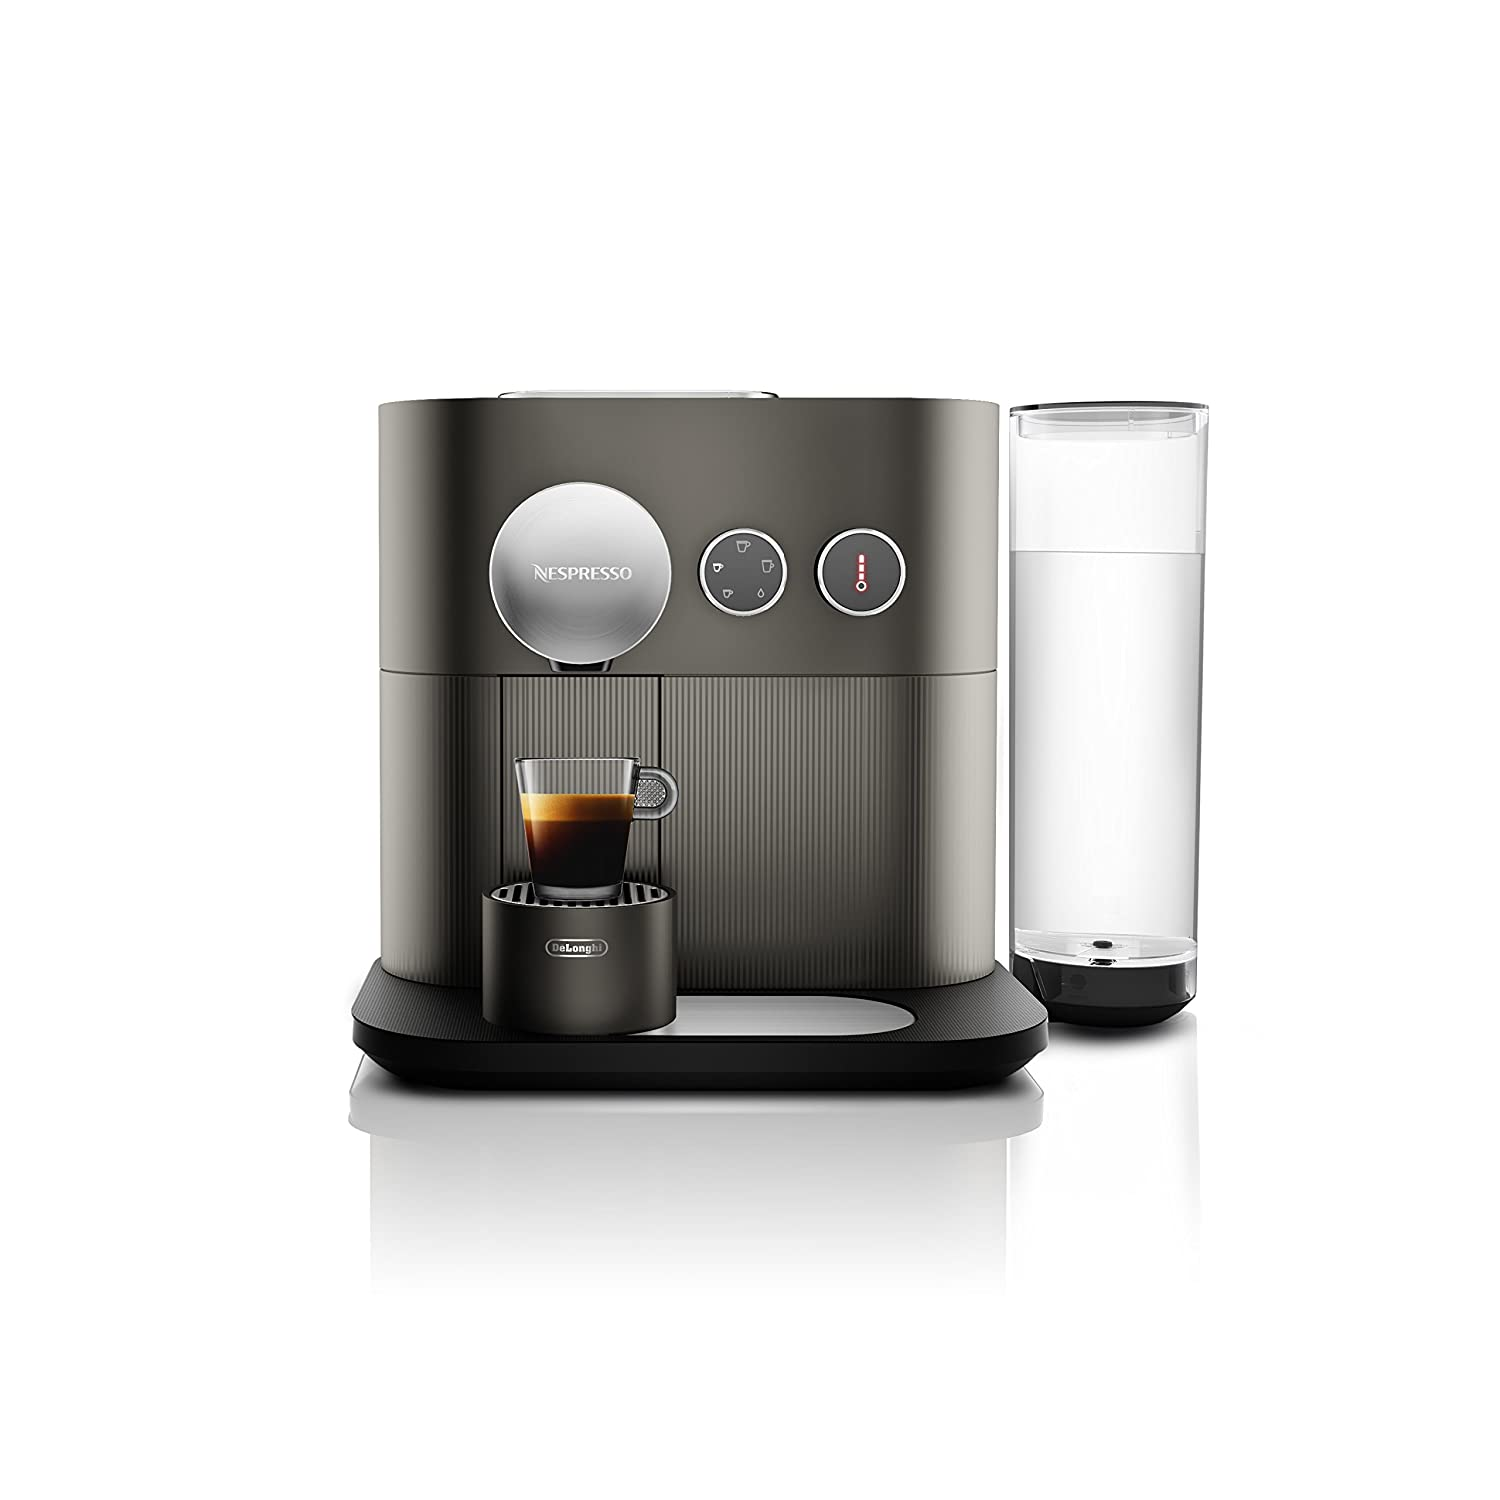 Nespresso Expert Original Espresso Machine, Anthracite Grey DeLonghi America Inc EN350G